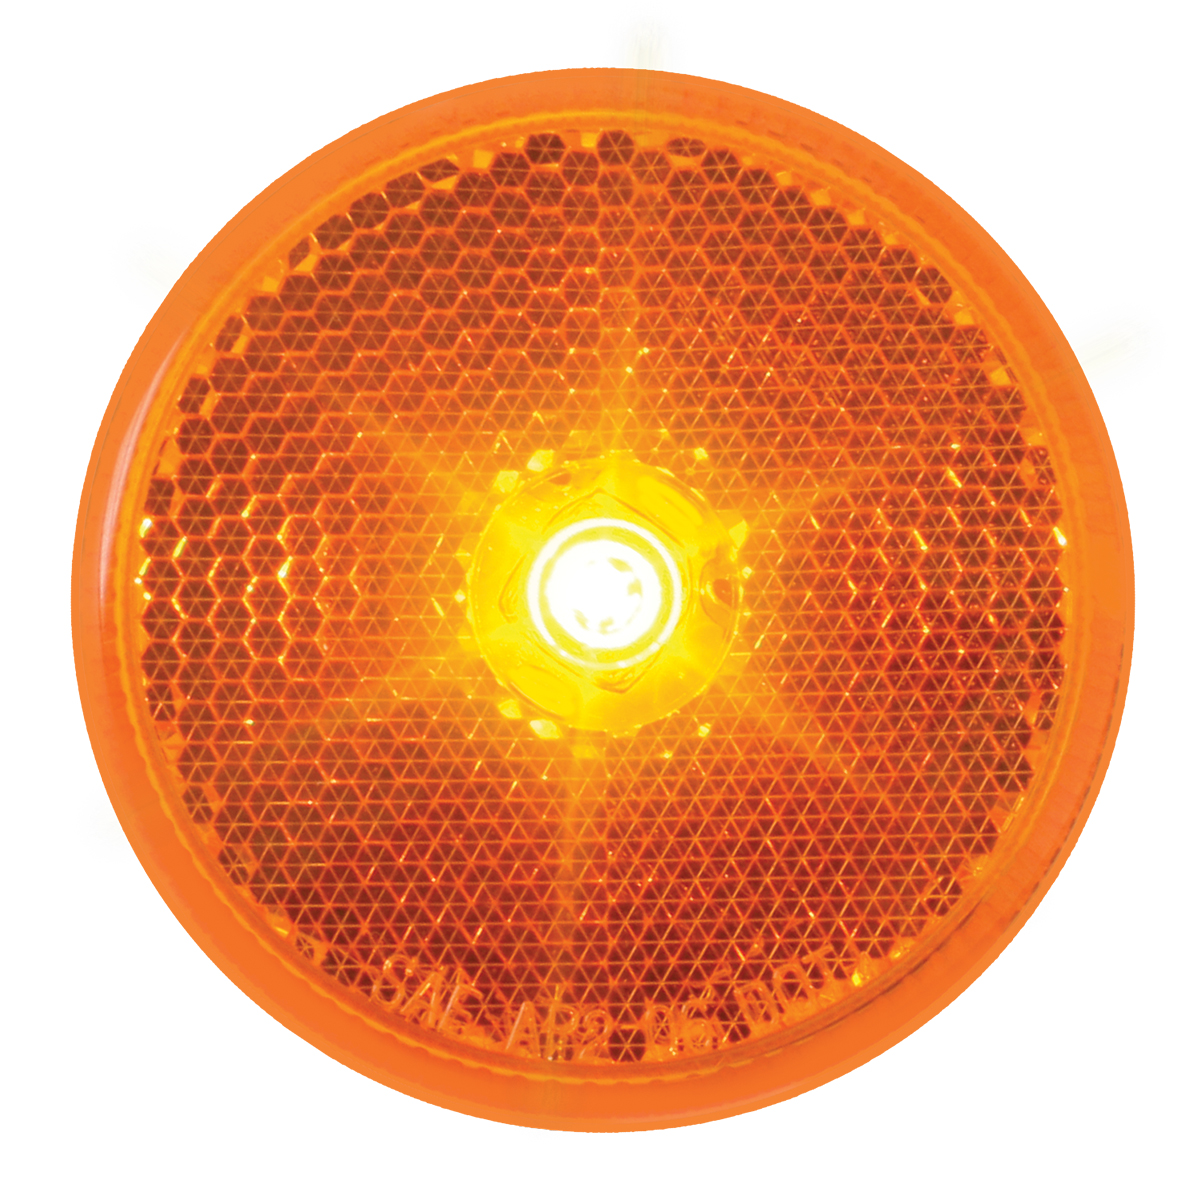 "76420 2.5"" Single LED Marker Light in Amber/Amber"